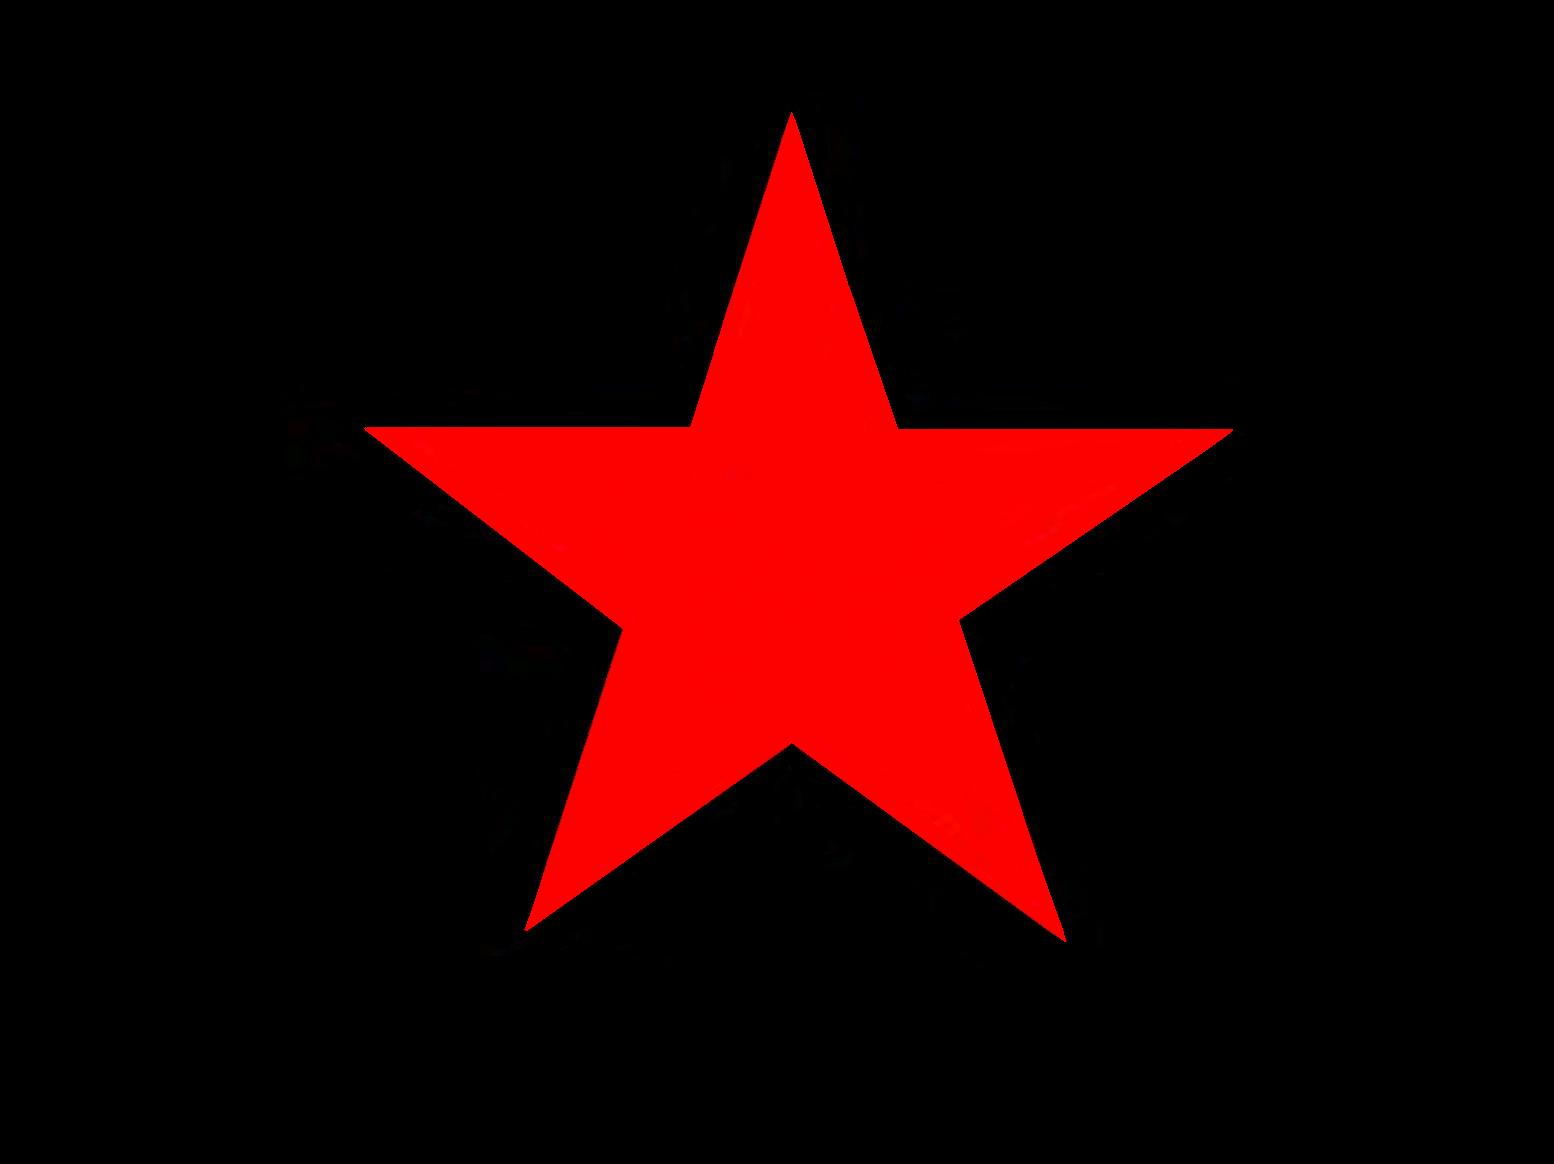 red star forum